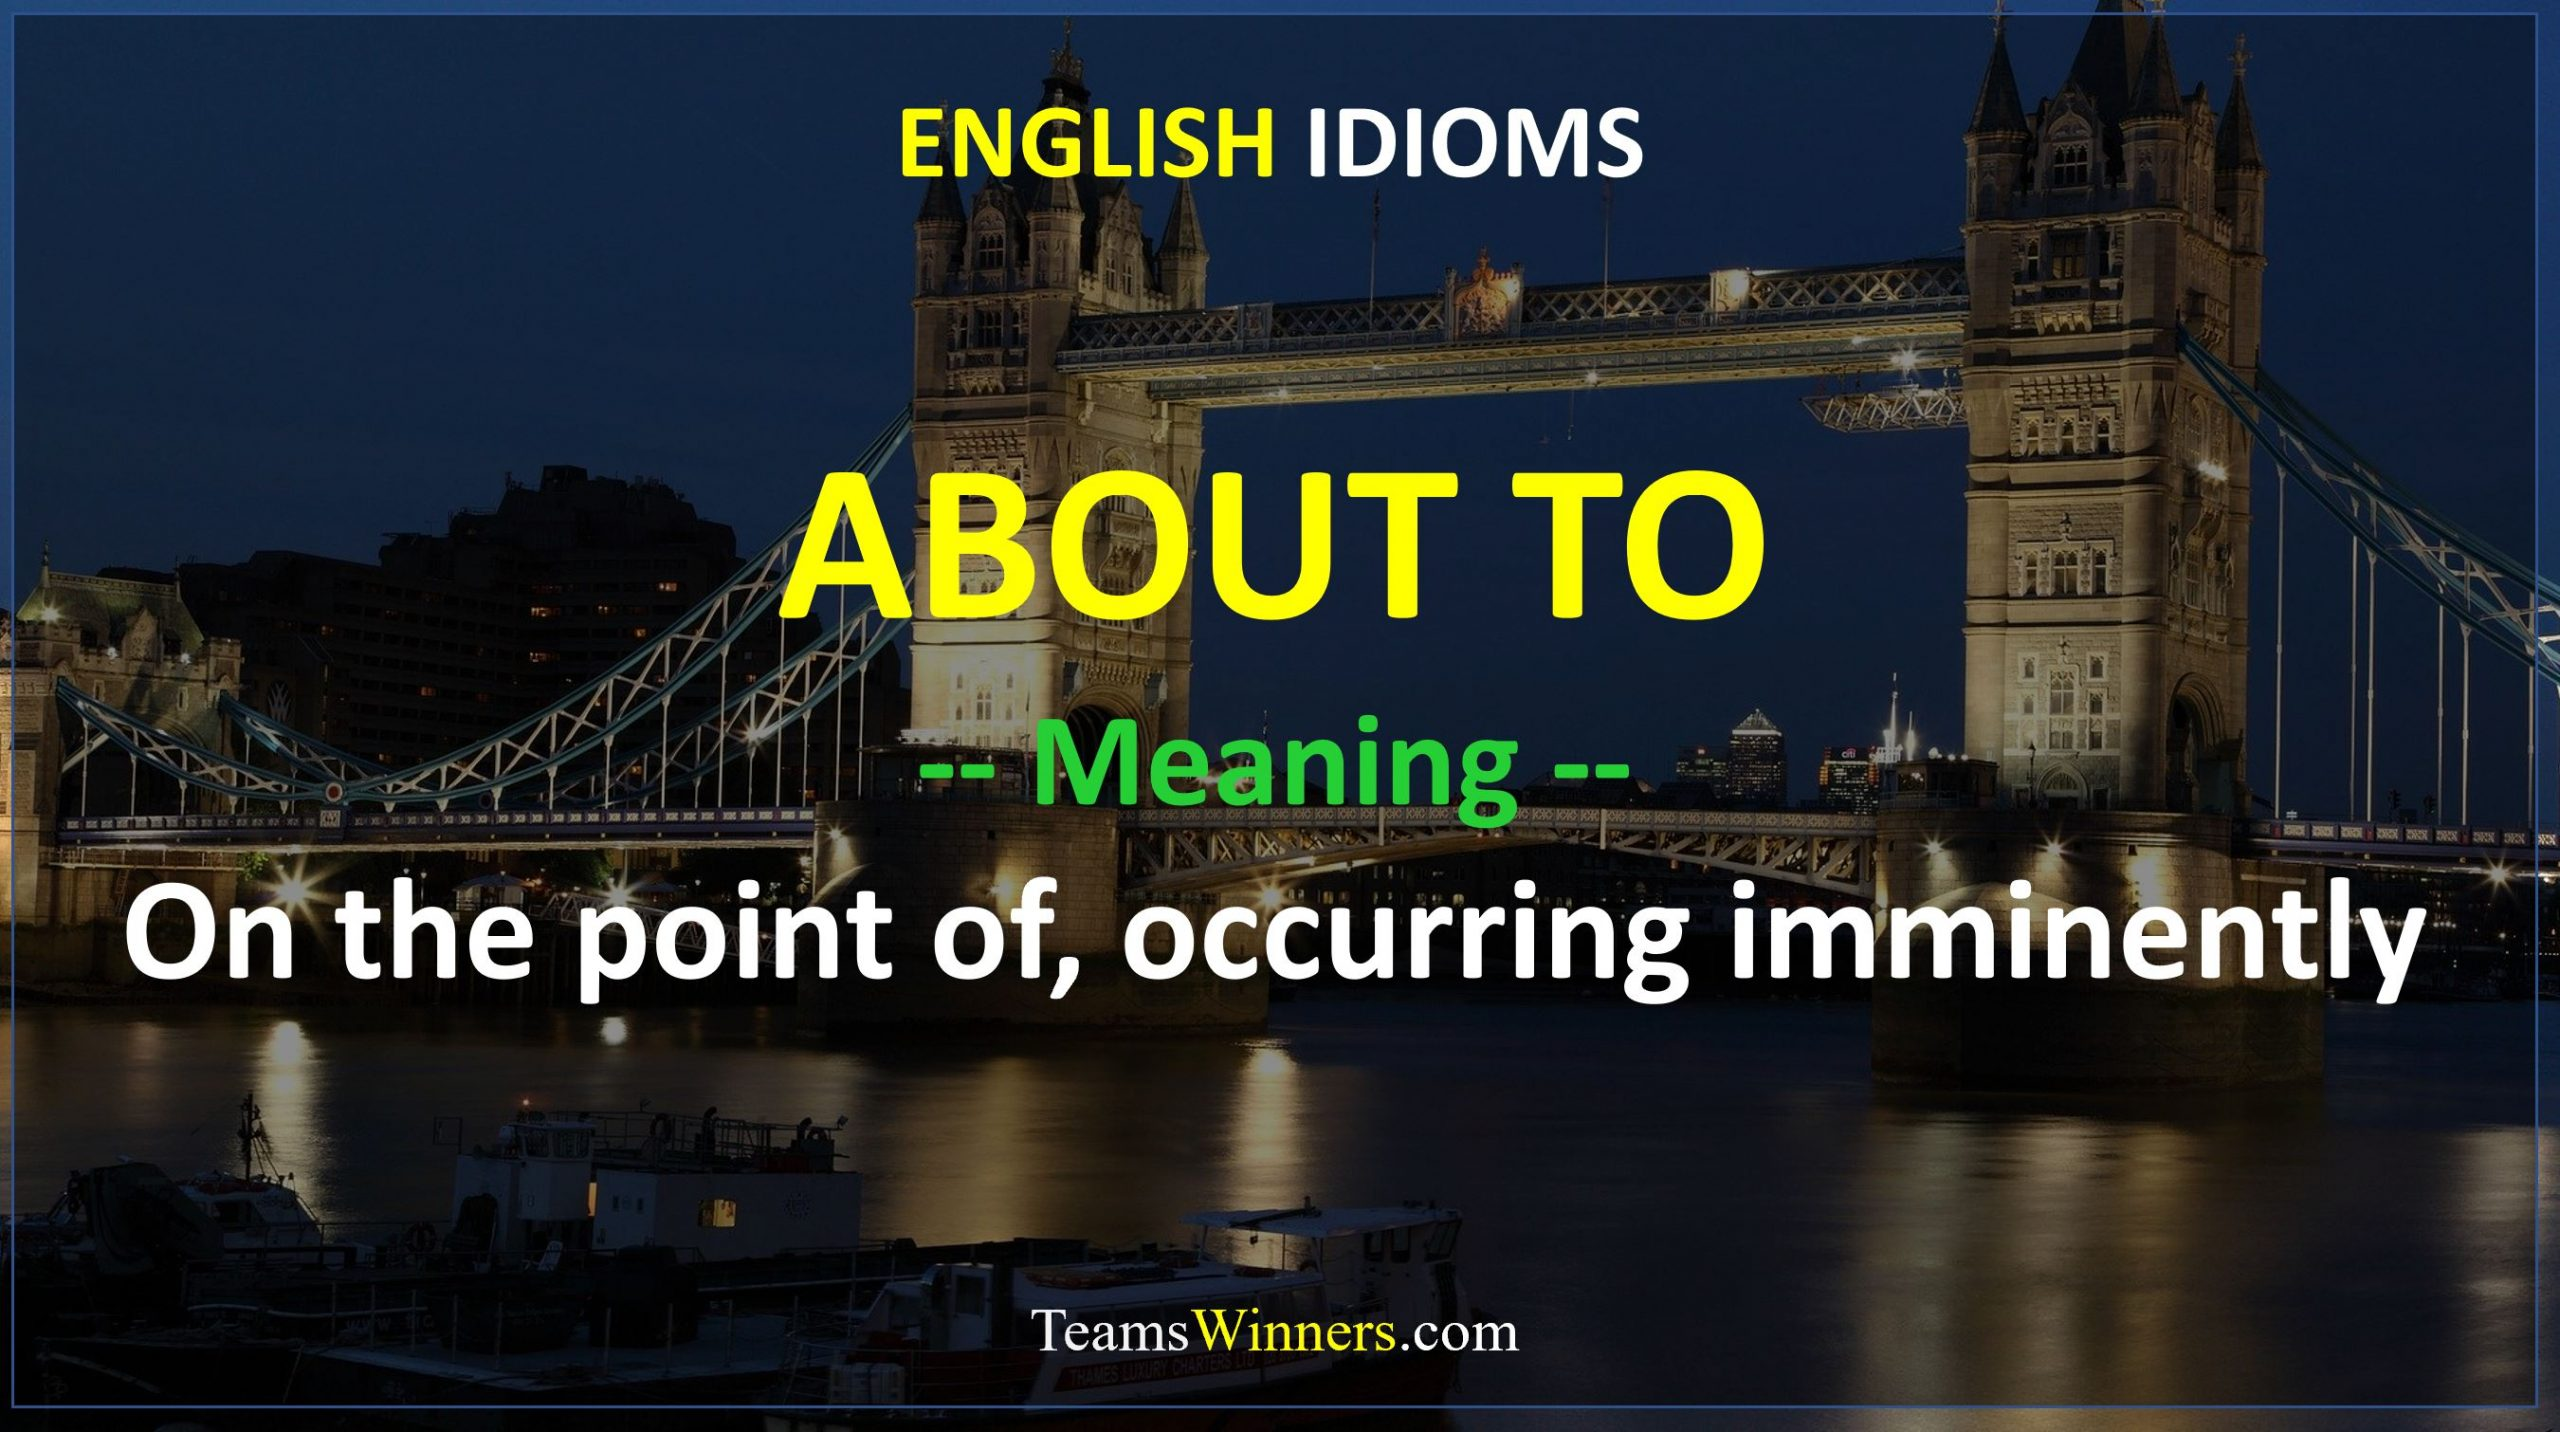 English Idiom - About To